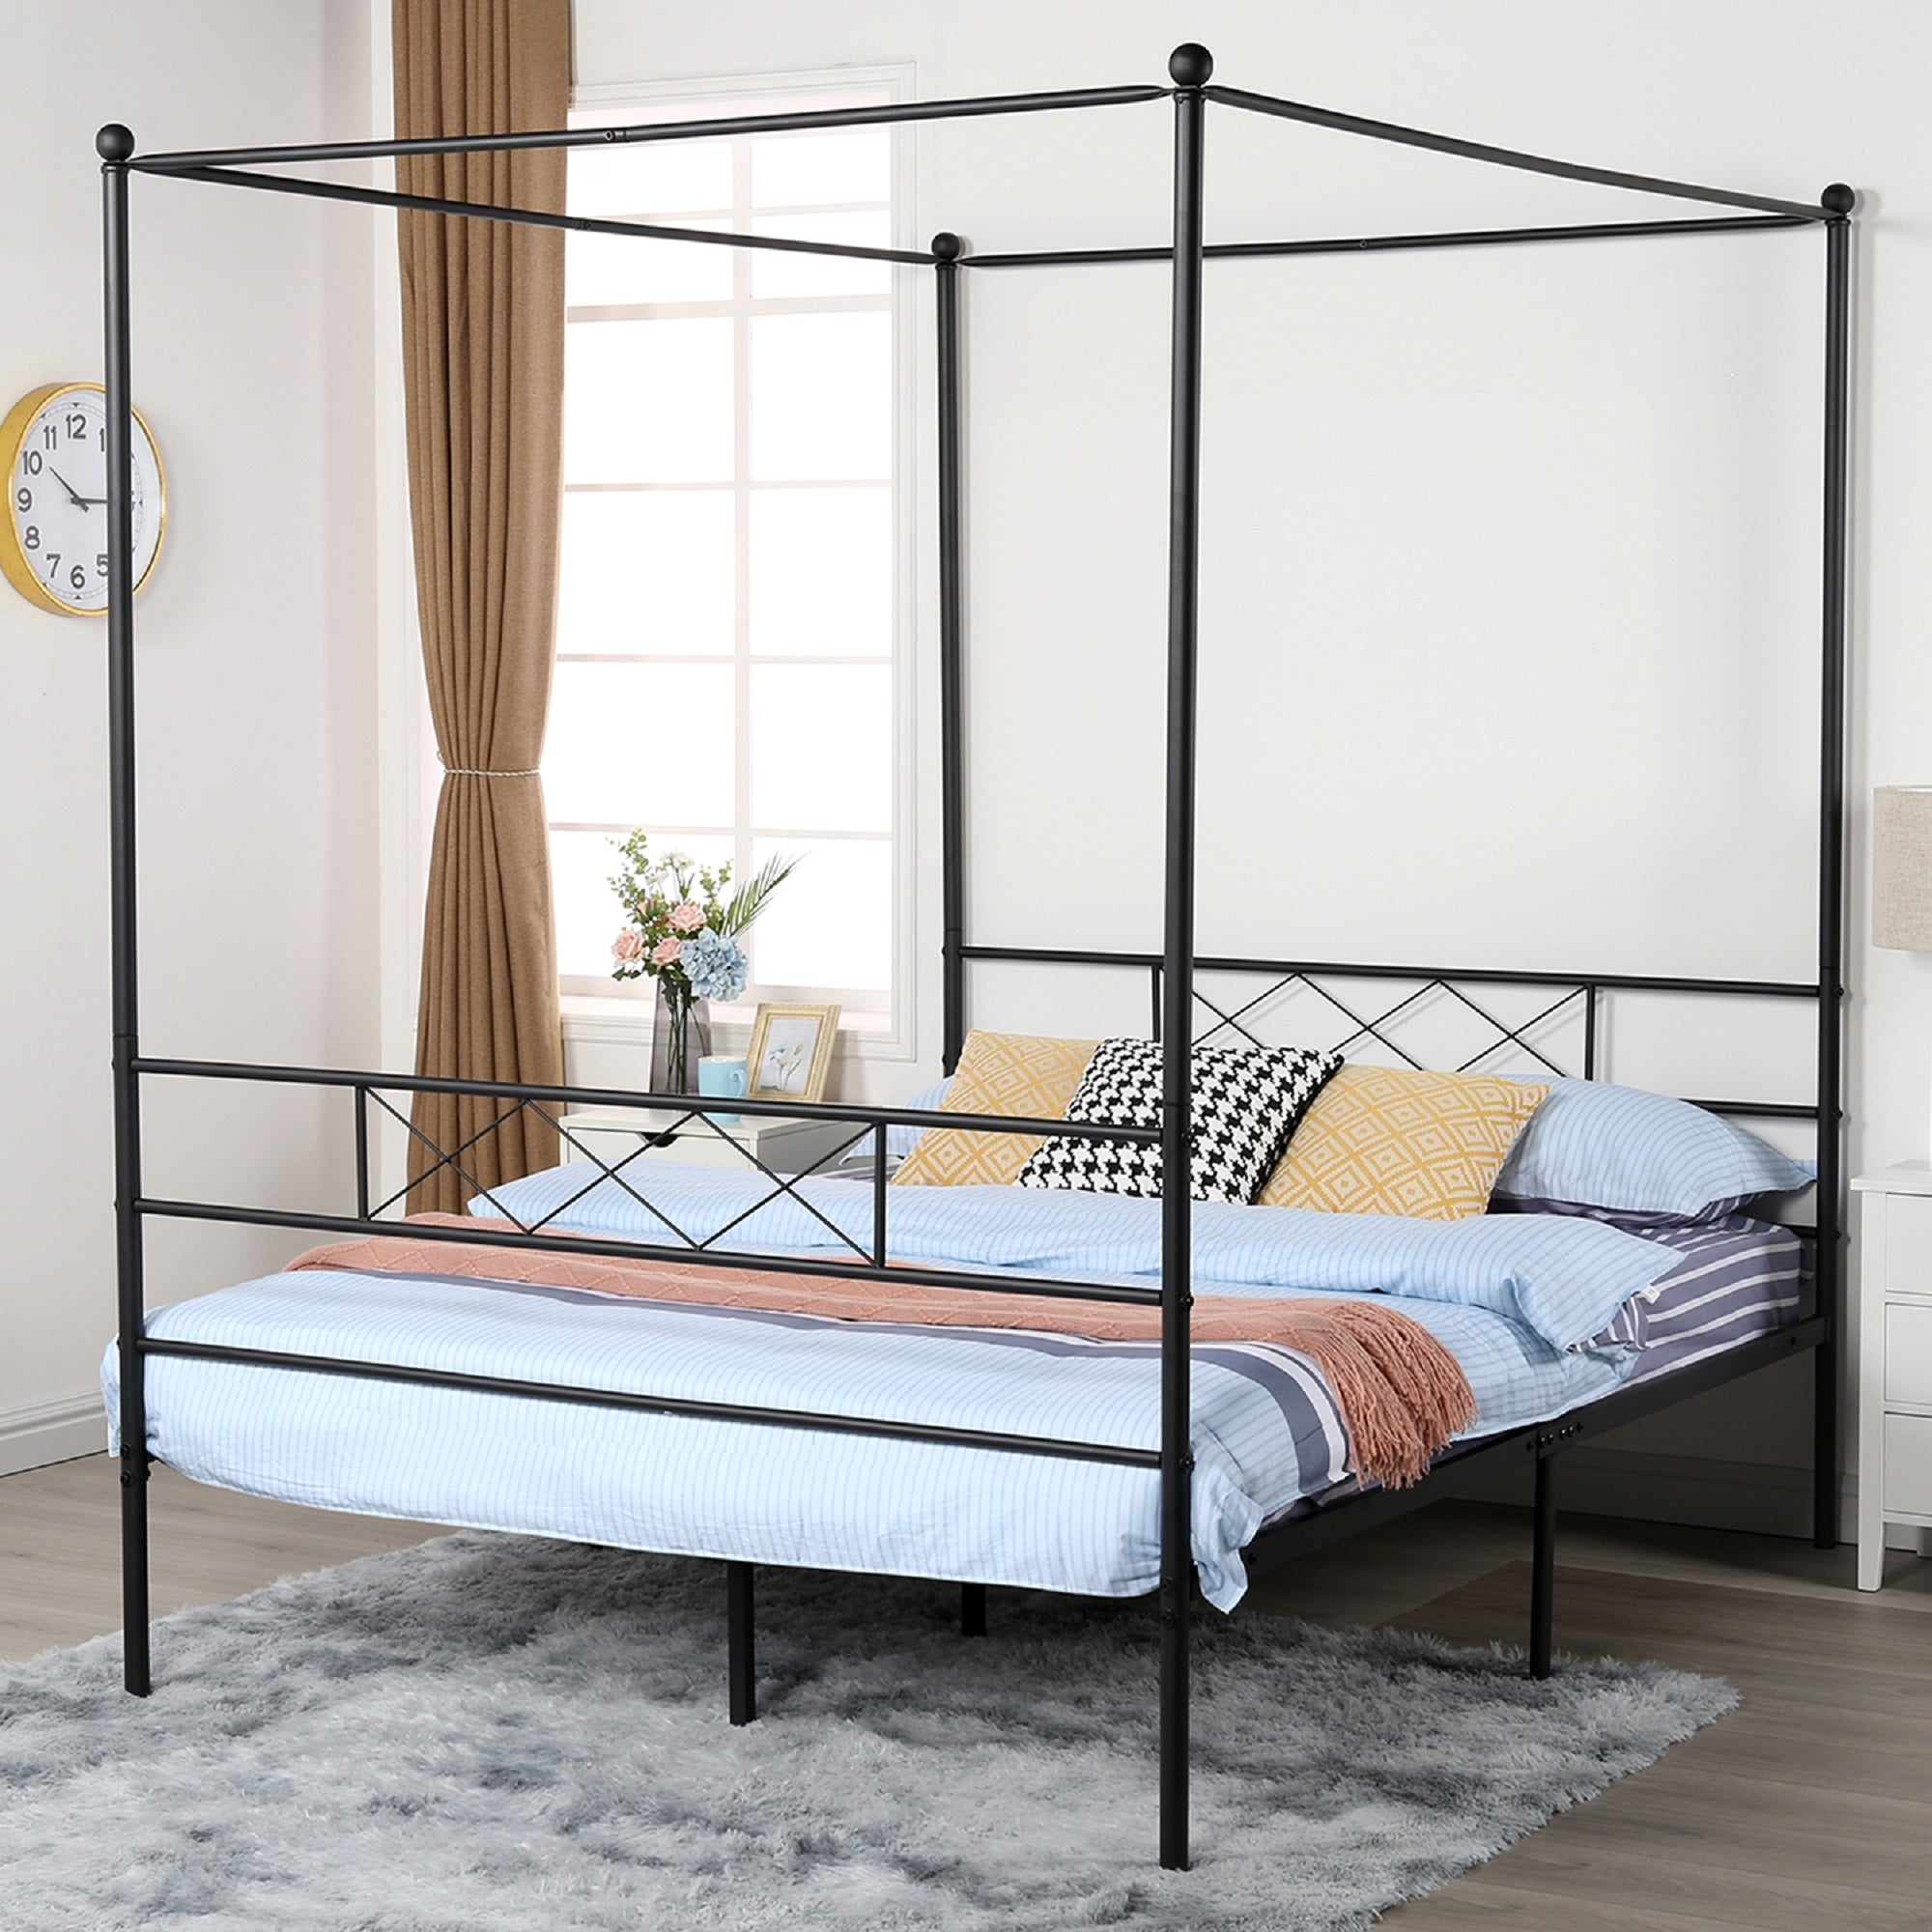 Shop Black Friday Deals On Vecelo Metal Canopy Bed Frame Twin Full Queen 3 Options Overstock 32500330